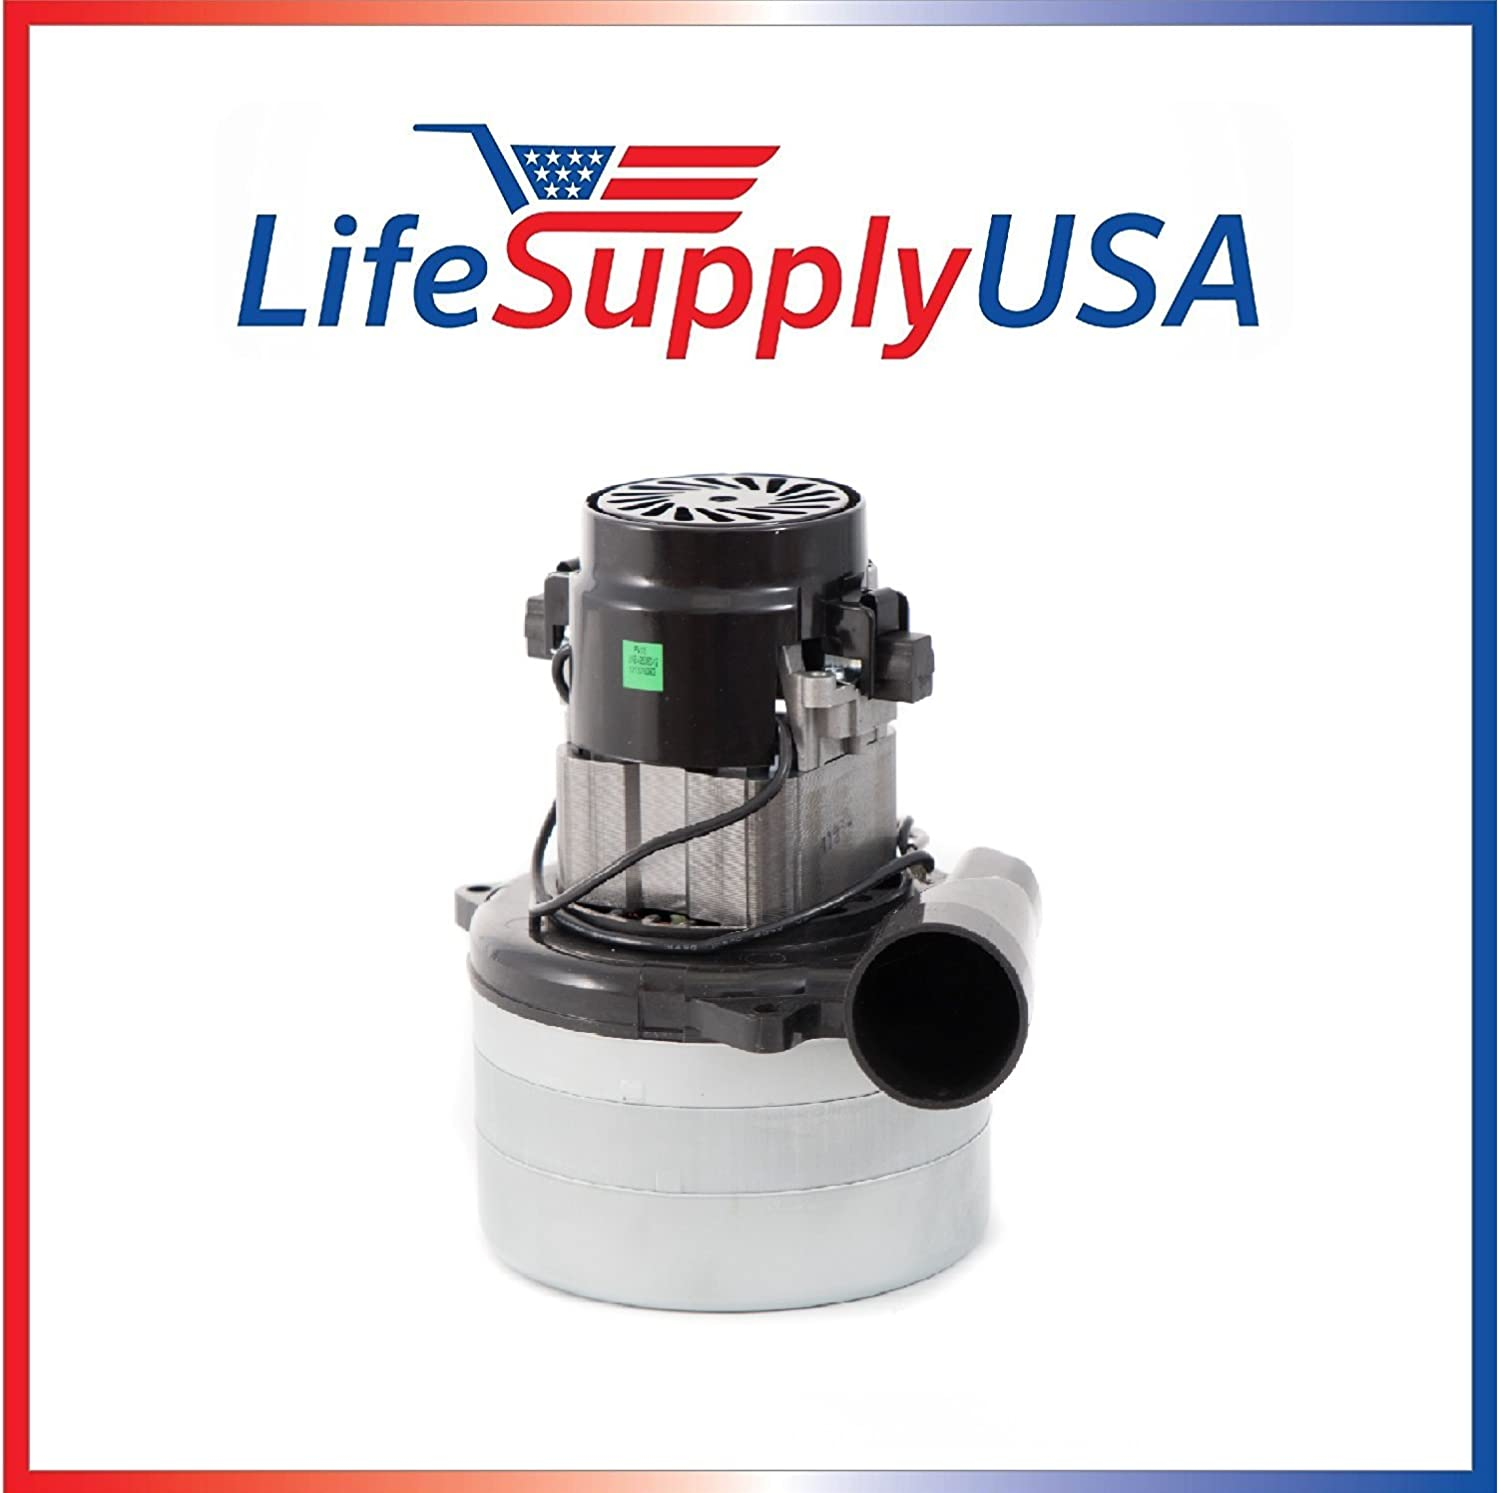 "Central Vac Vacuum Motor 3 STAGE with Wires Compatible with Most Brands 5.7"" 120 Volt 1400 Watt by LifeSupplyUSA"